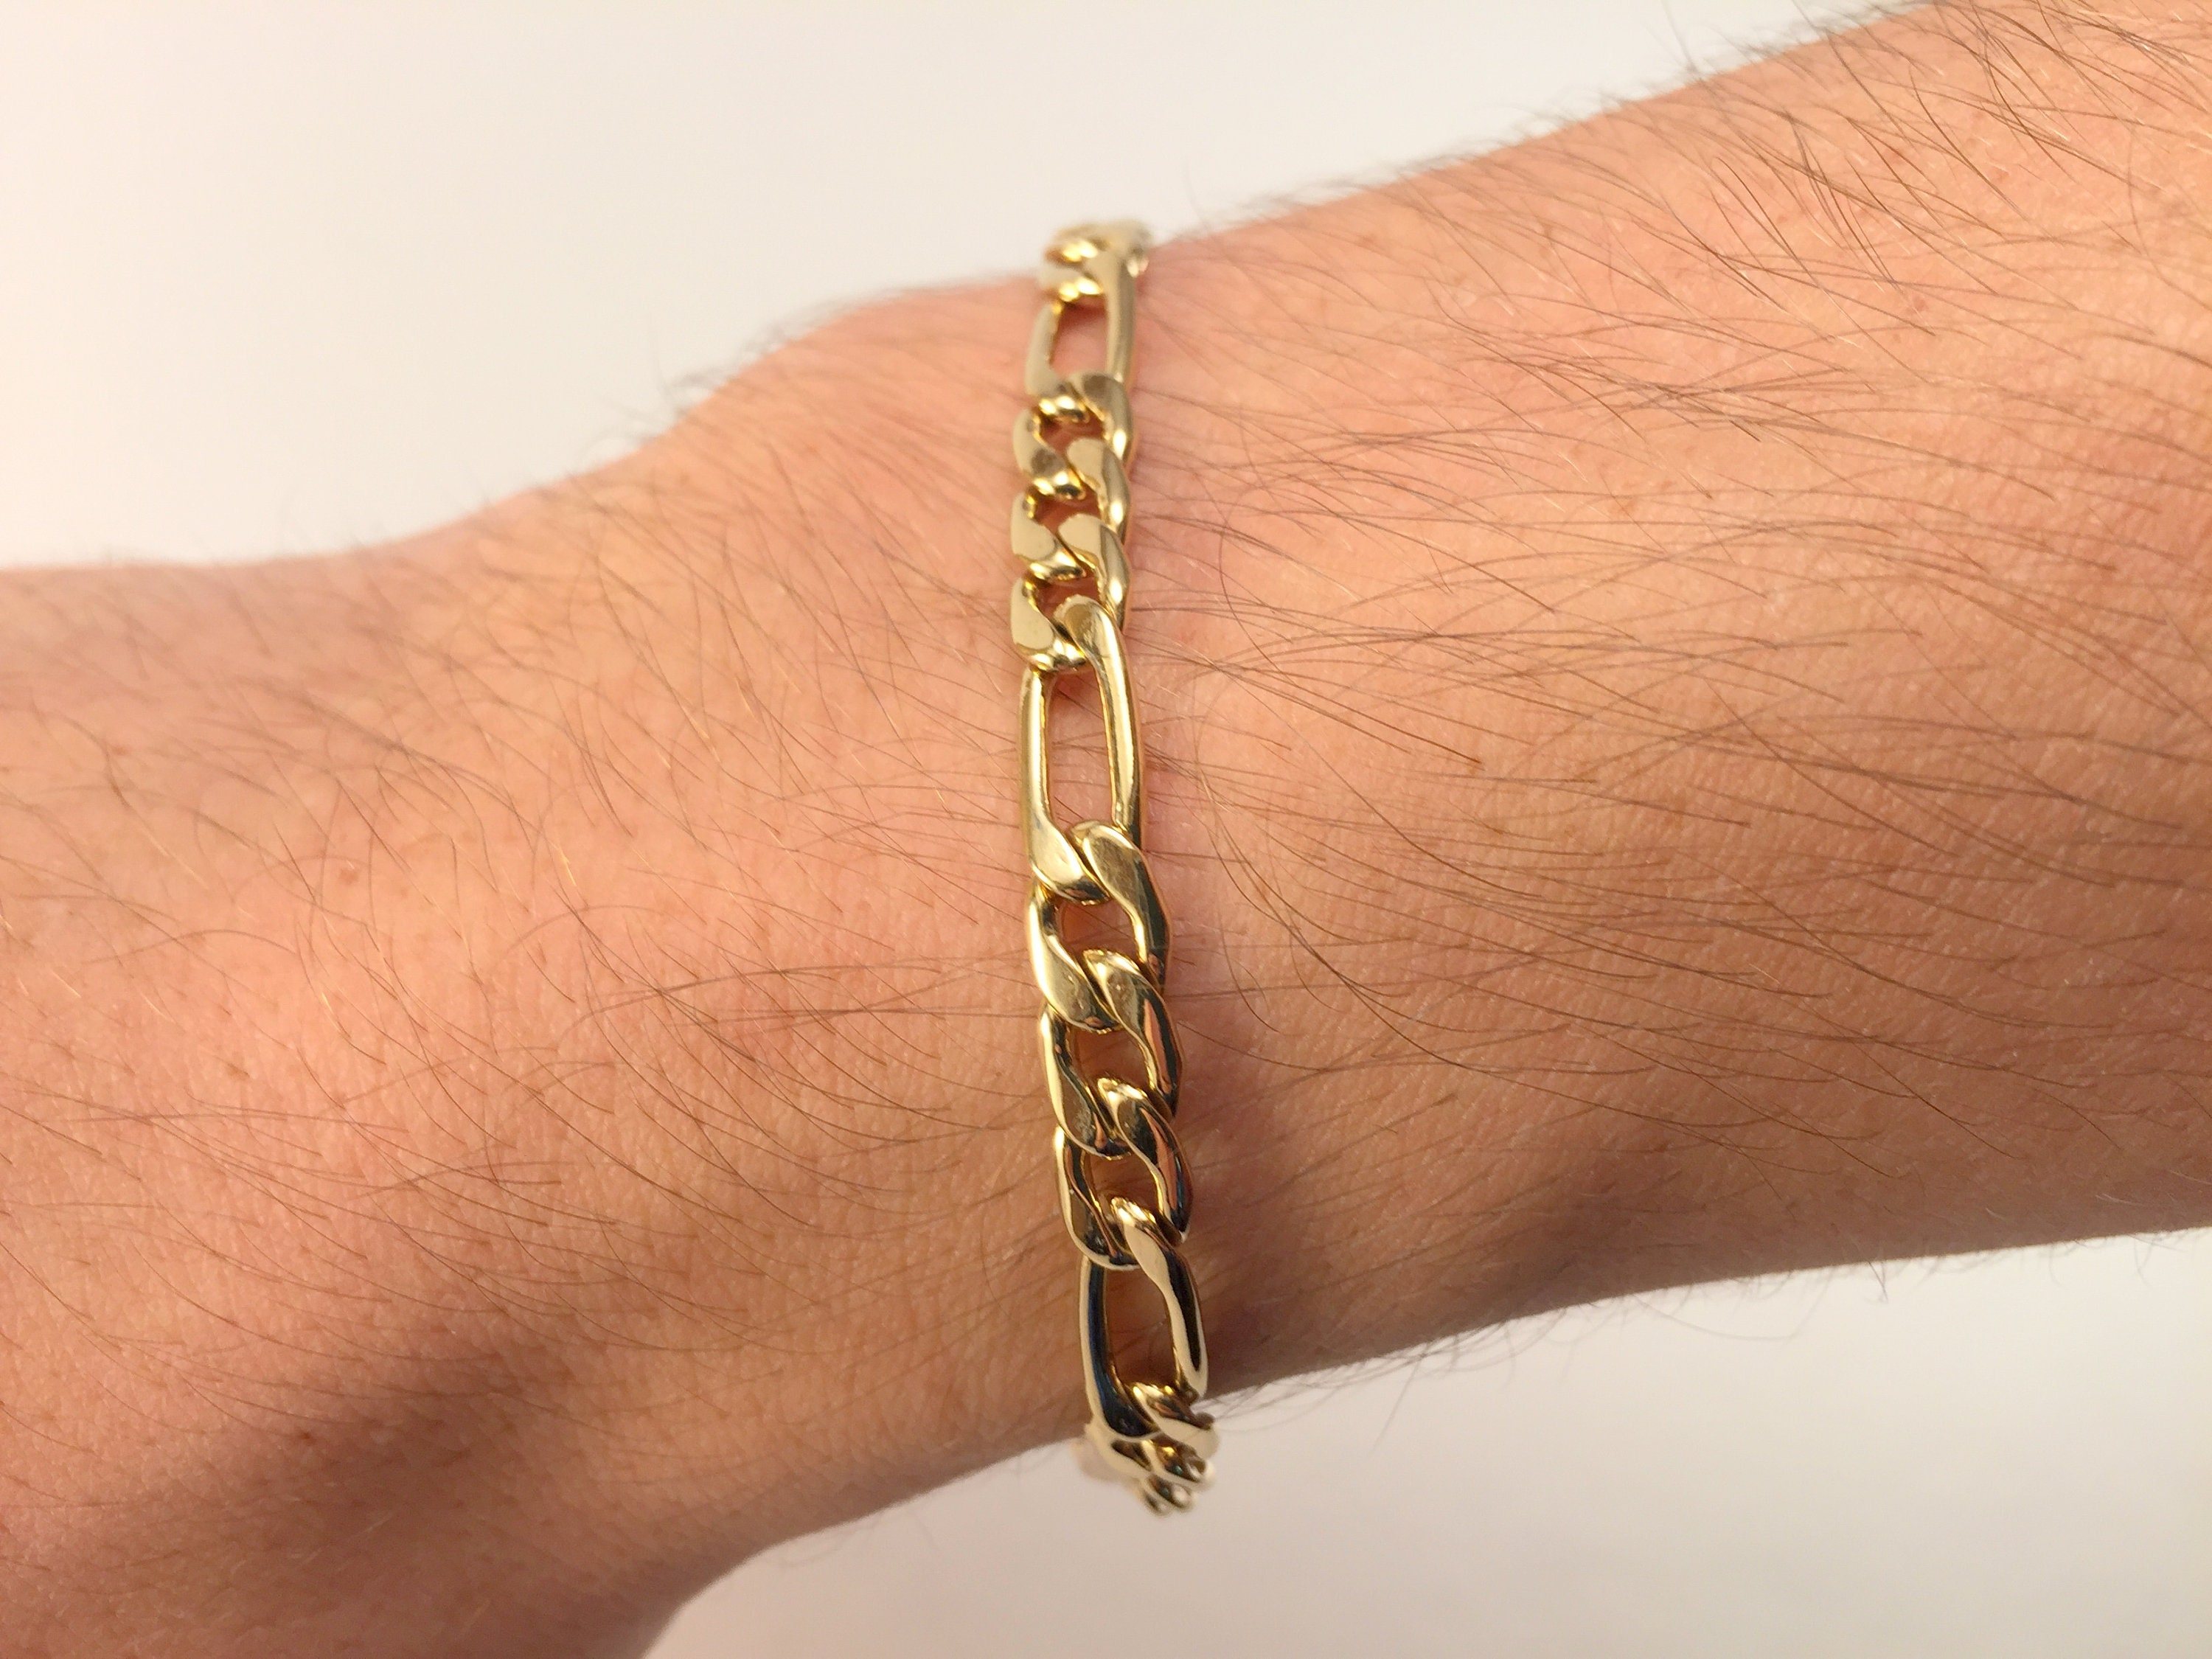 63c29c0e53a61 Mens Gold Bracelet, Figaro Diamond Cut Chain Bracelet, 5.5mm, 6.5mm Long  Link Chain Jewelry, All Lengths Available, Chain for Men and Women